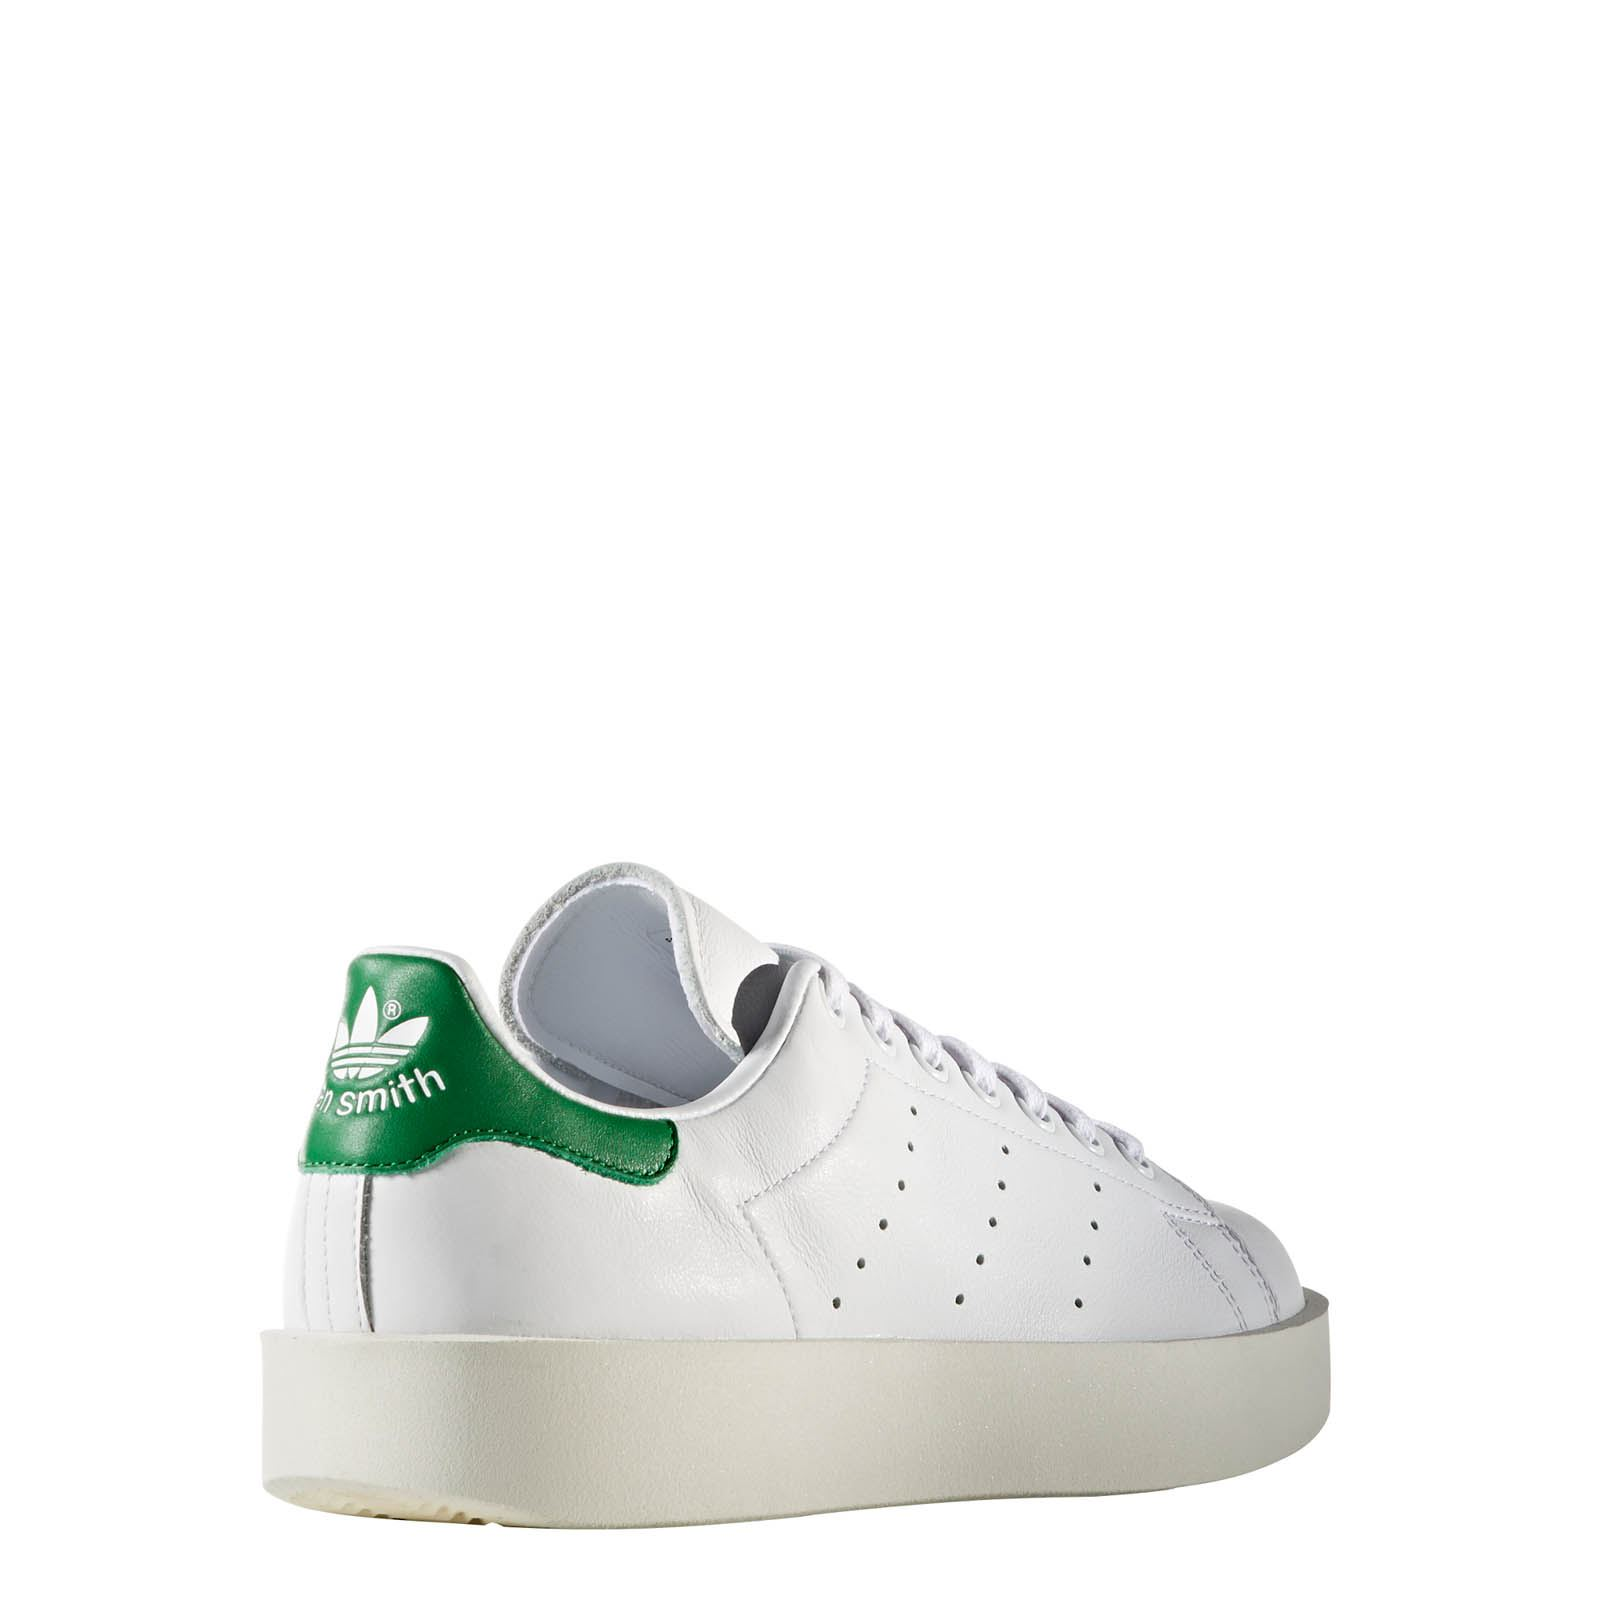 ADIDAS ORIGINALS Stan Smith Bold W - Scarpe da tennis, sneakers - bianco